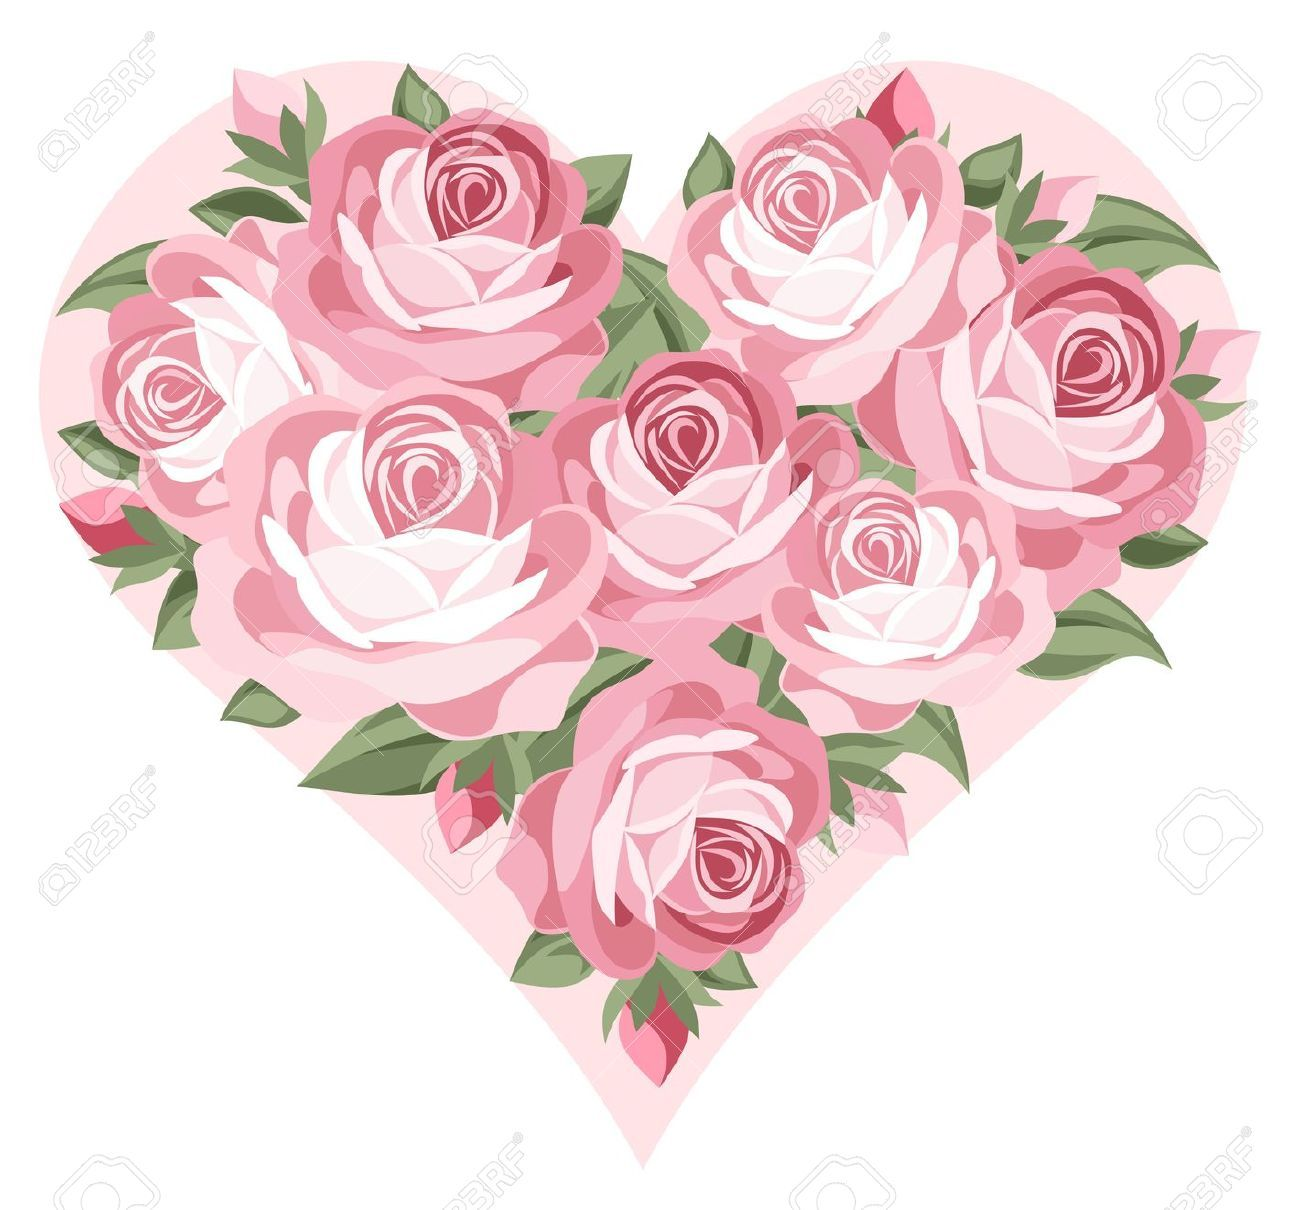 Image Result For Roses Gif Roses And Flowers Pinterest Flowers